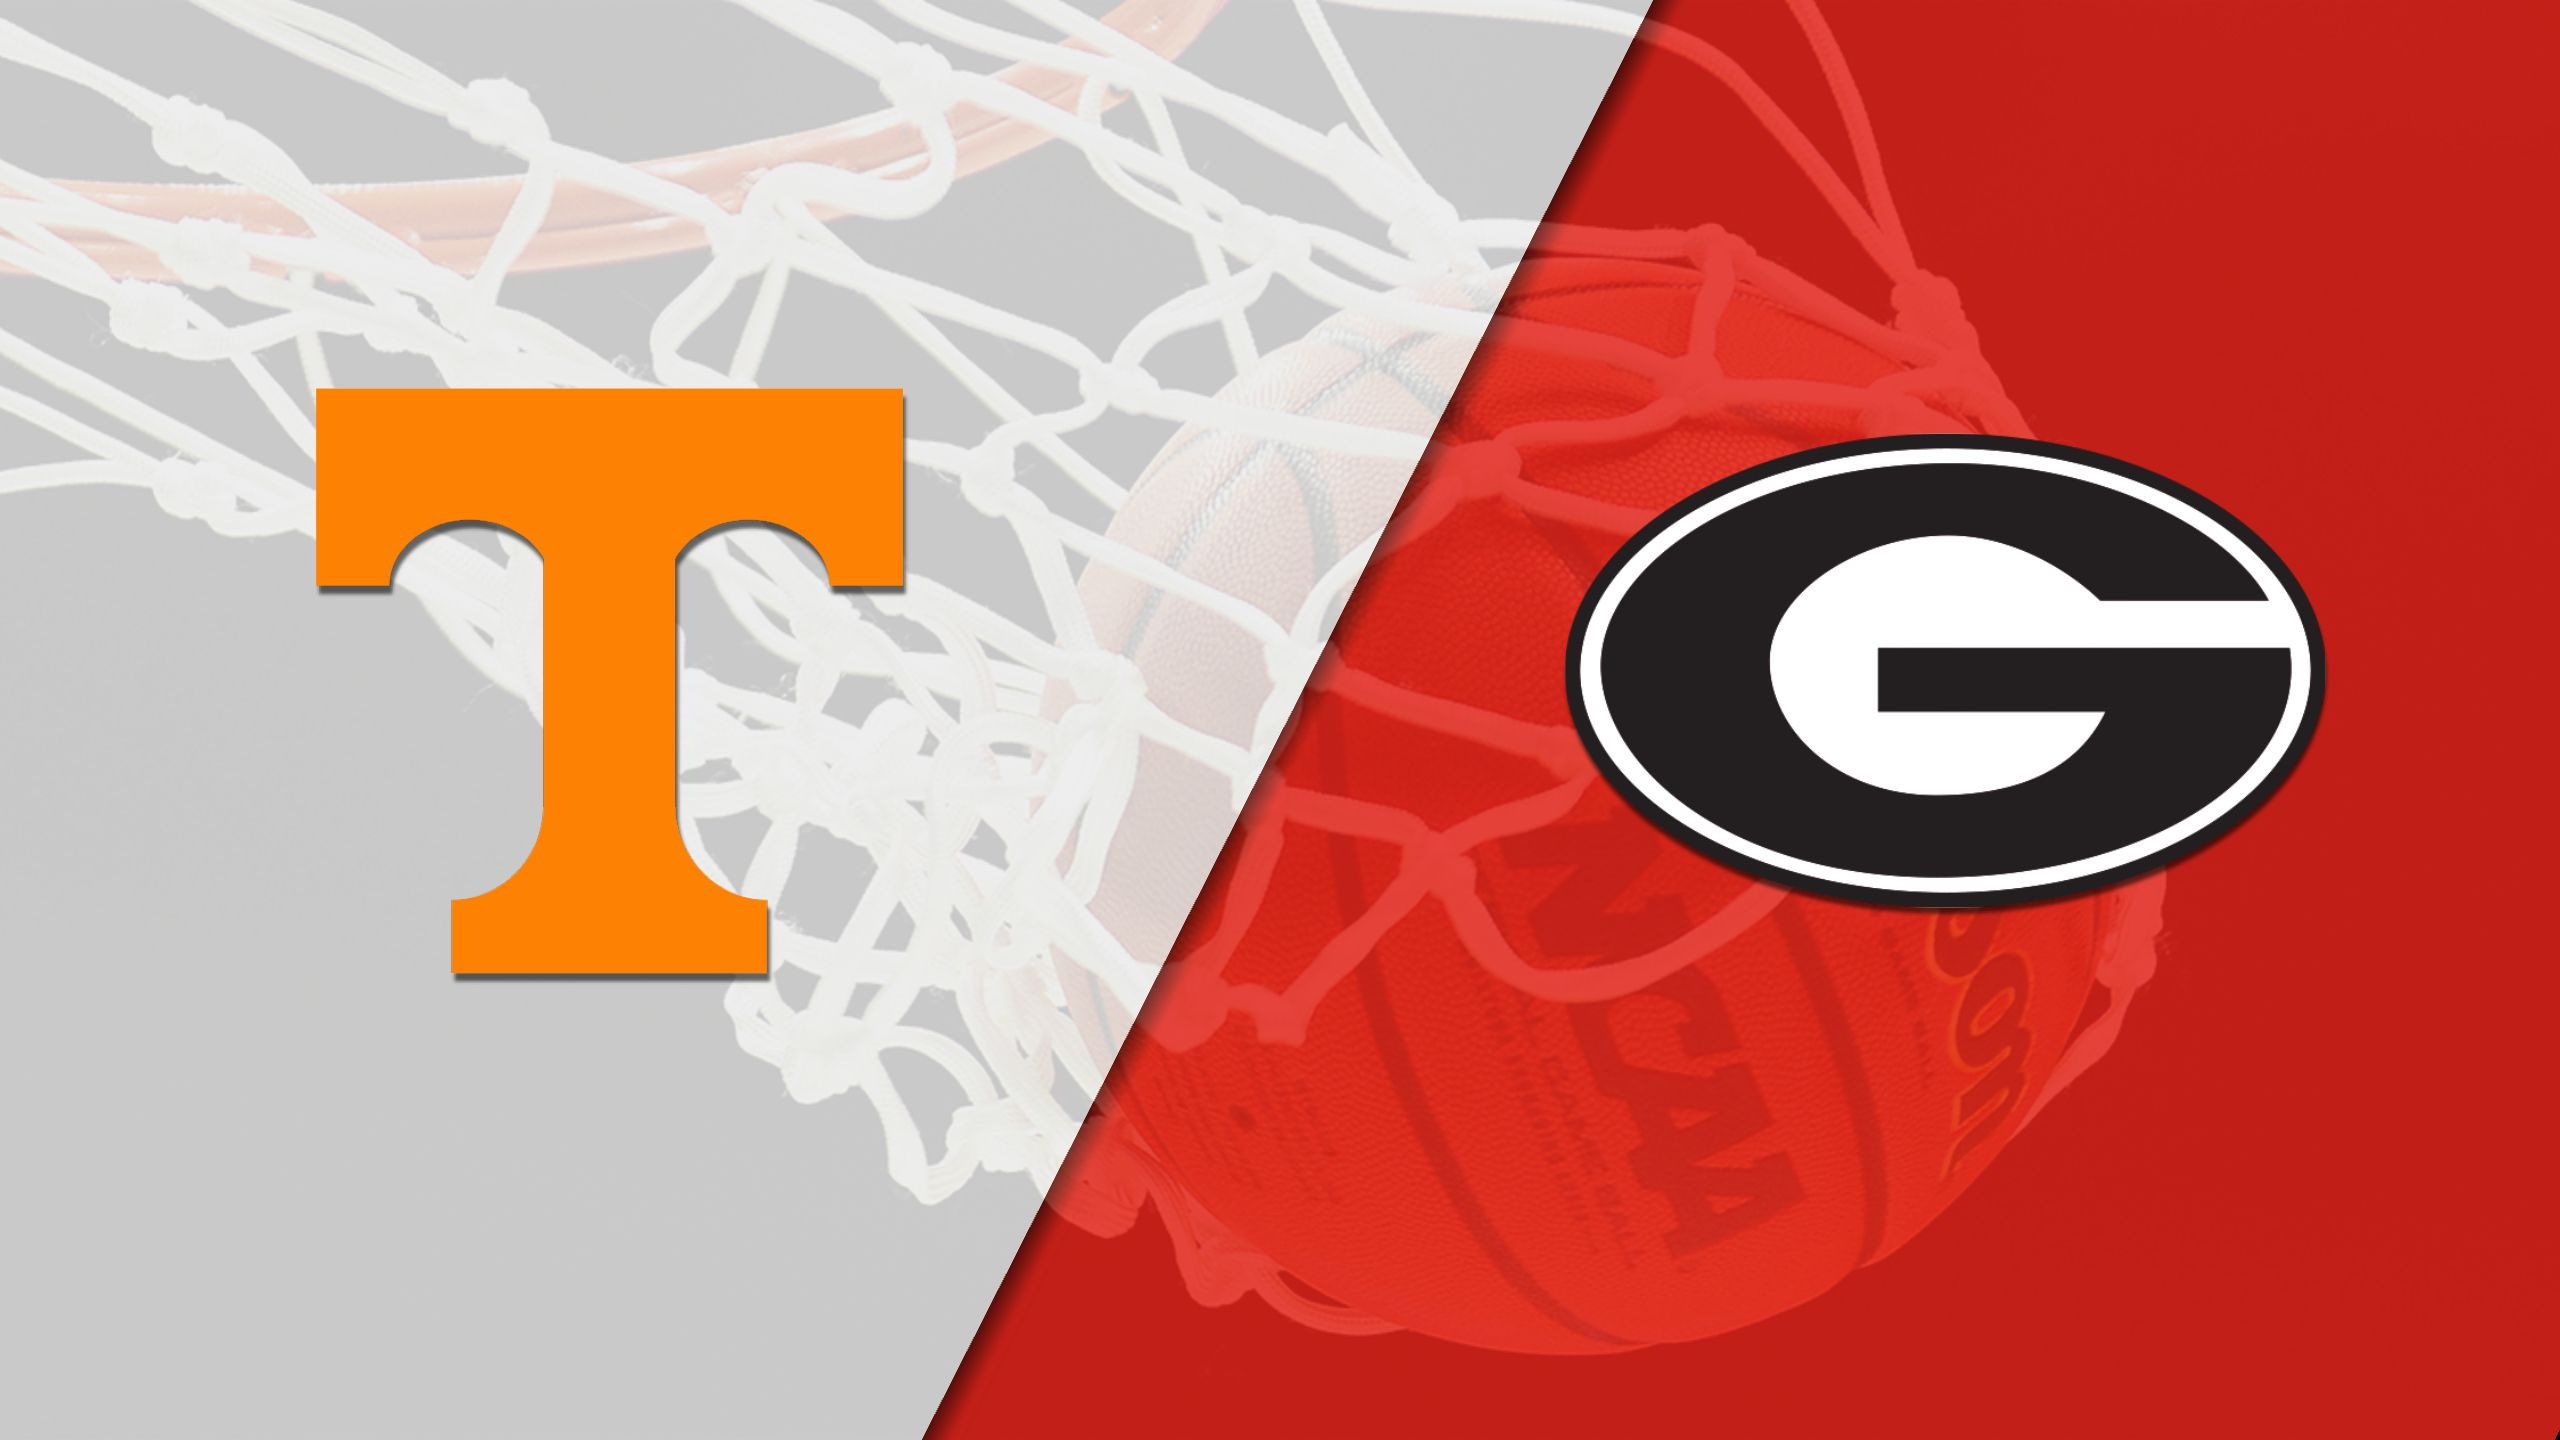 #18 Tennessee vs. Georgia (M Basketball) (re-air)